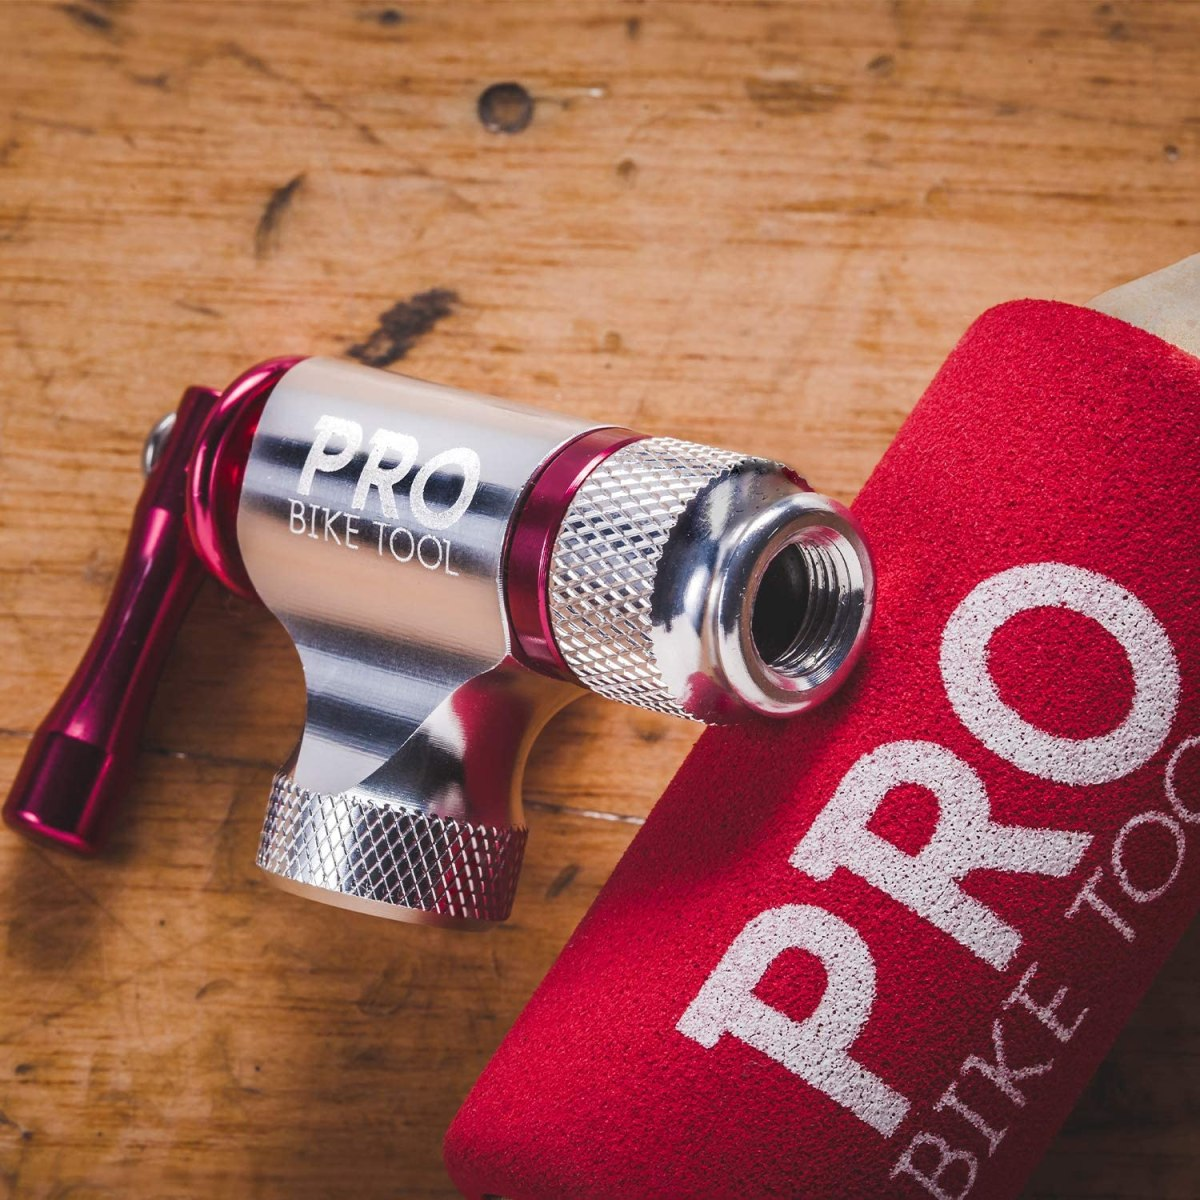 If you do not carry this CO2 tire inflator with you on bike rides, it won't help when you have a flat | Boing Boing